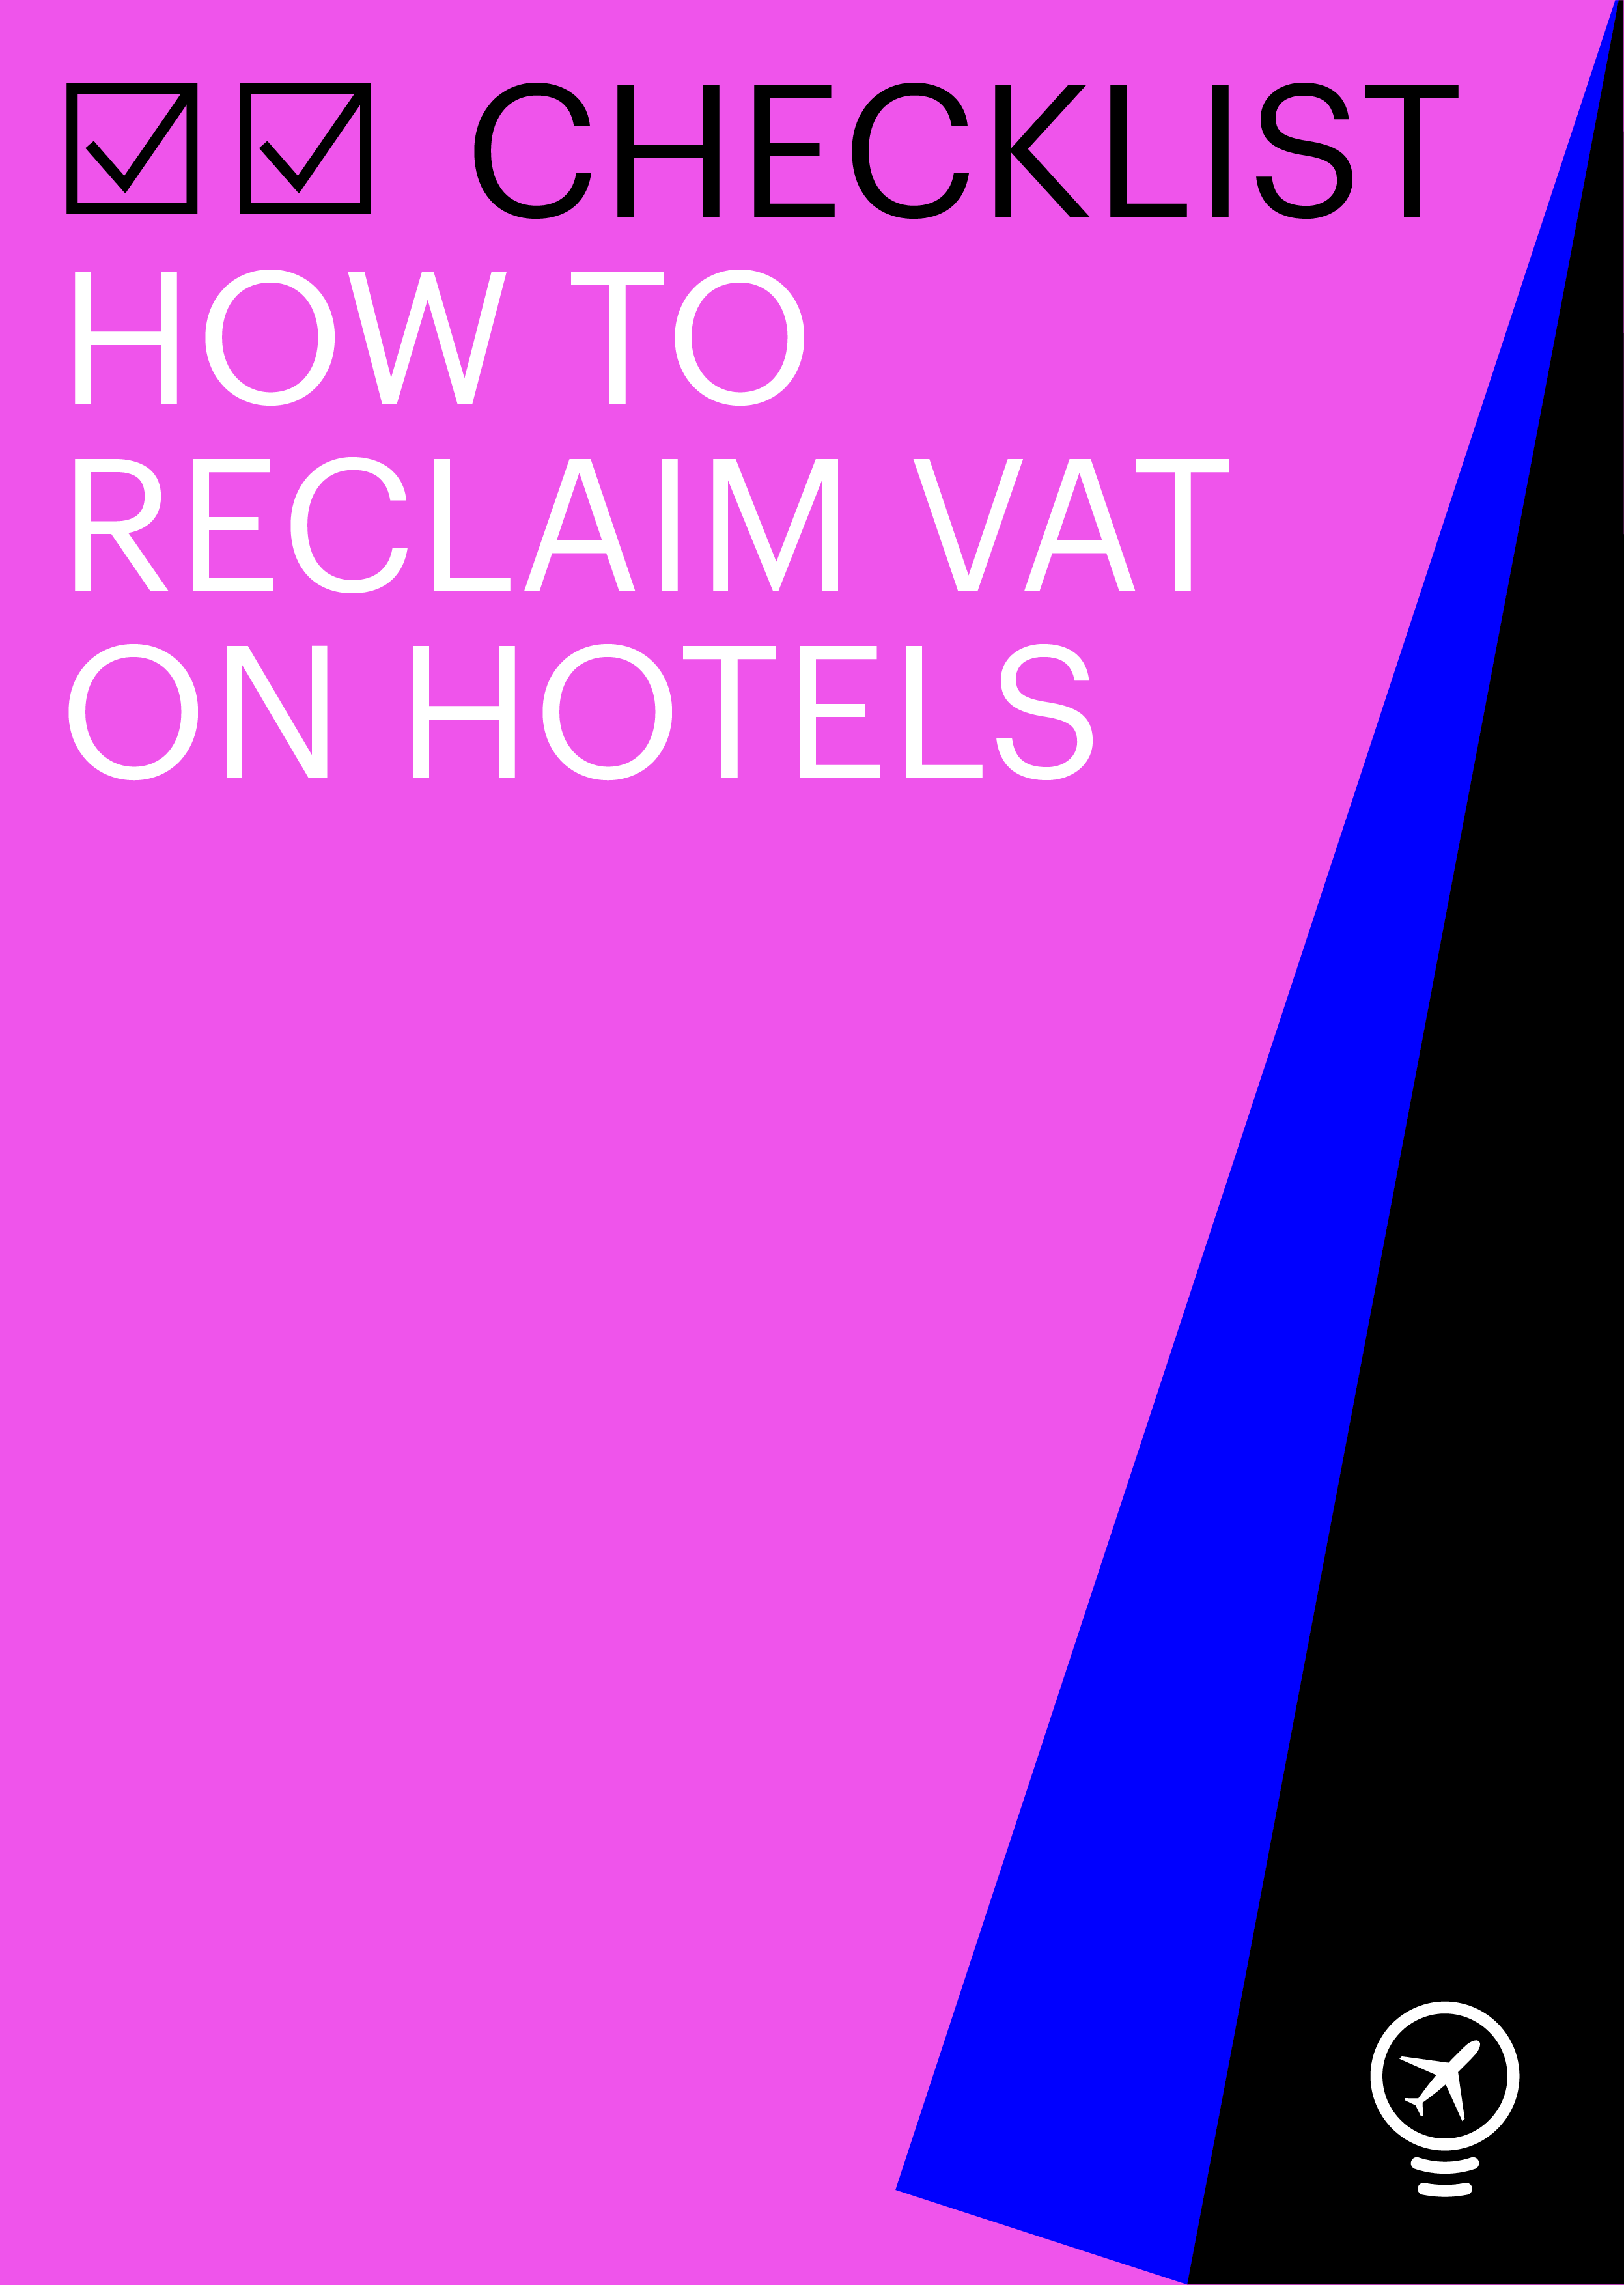 Checklist: How to reclaim VAT on hotels